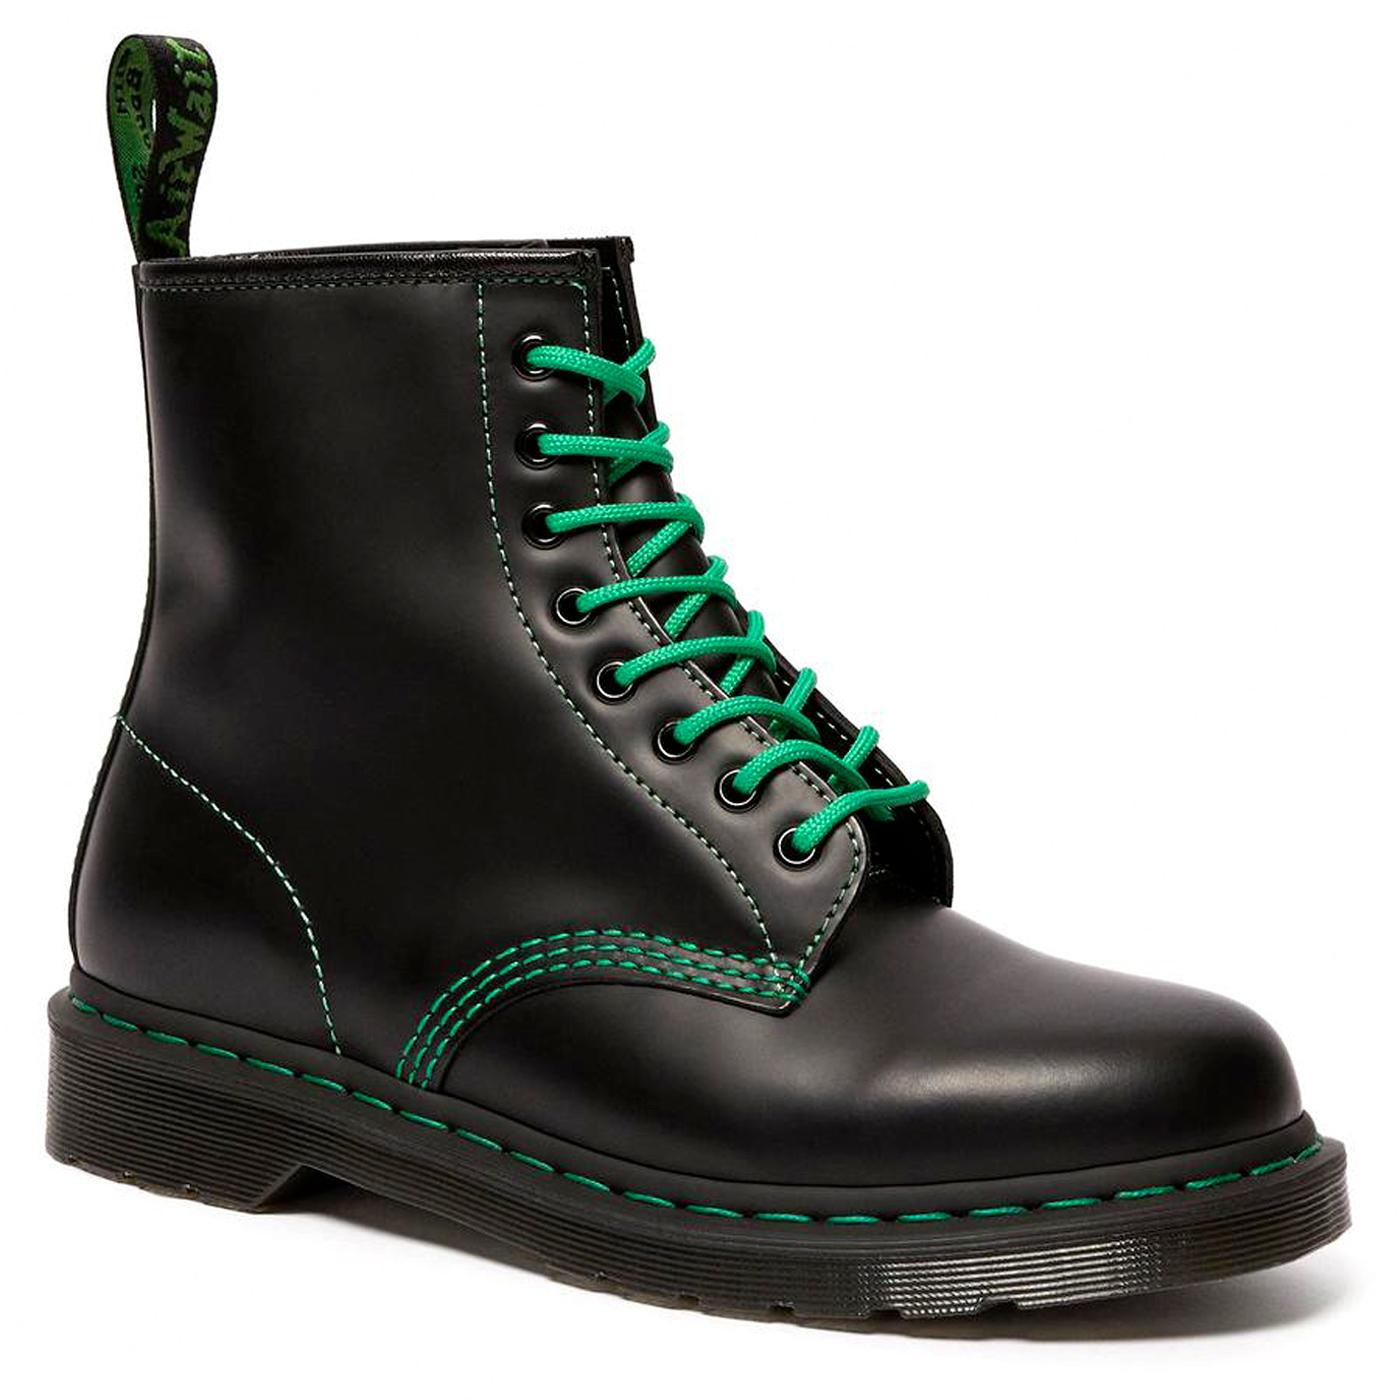 DR MARTENS 1460 GS Smooth Mod Boots (Black/Green)